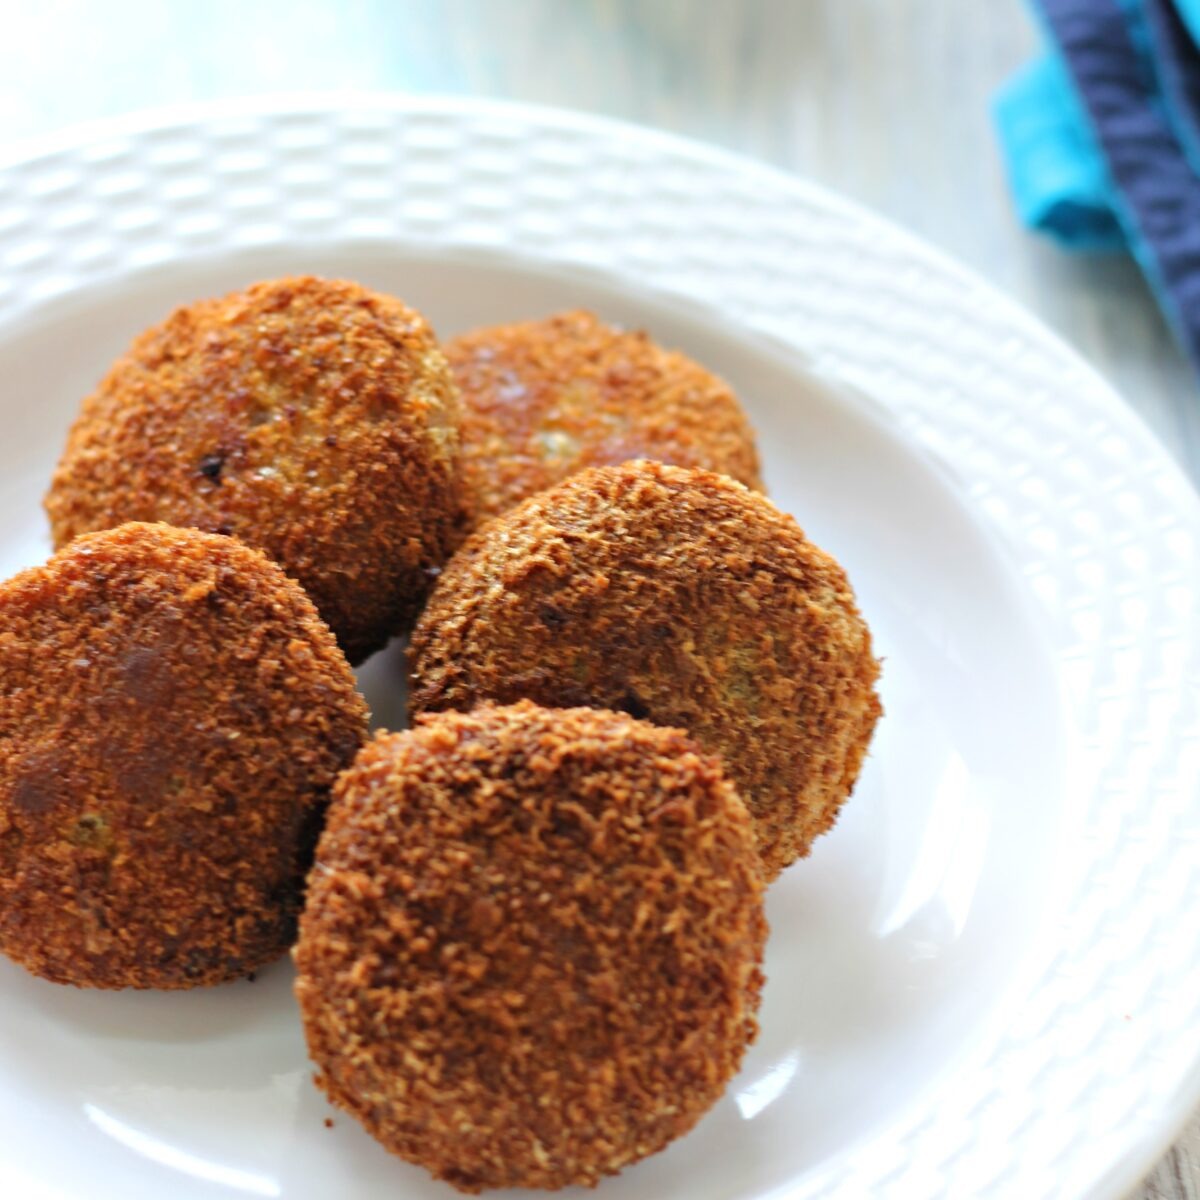 Chicken cutlet, easy make ahead party appetizer